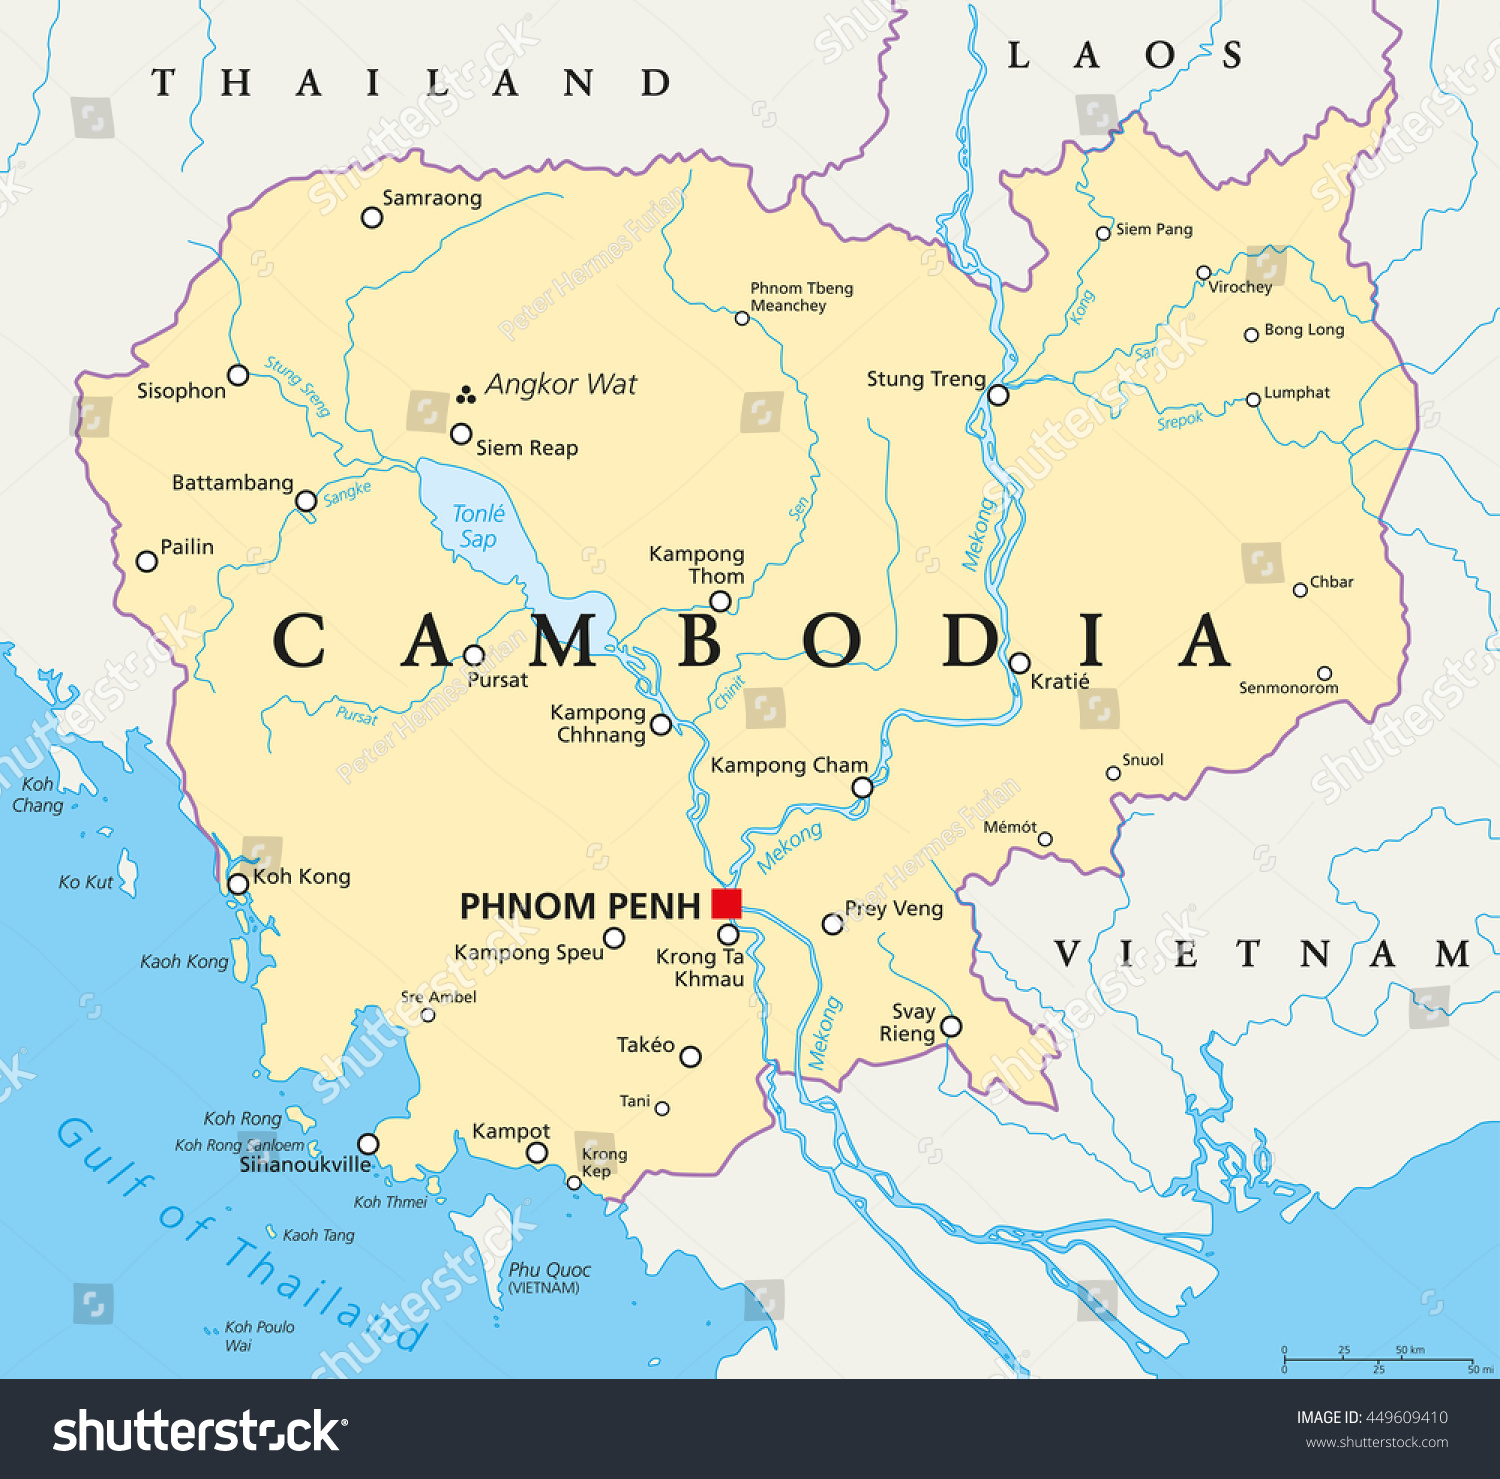 Cambodia political map capital phnom penh vectores en stock cambodia political map with capital phnom penh national borders important cities rivers and gumiabroncs Images